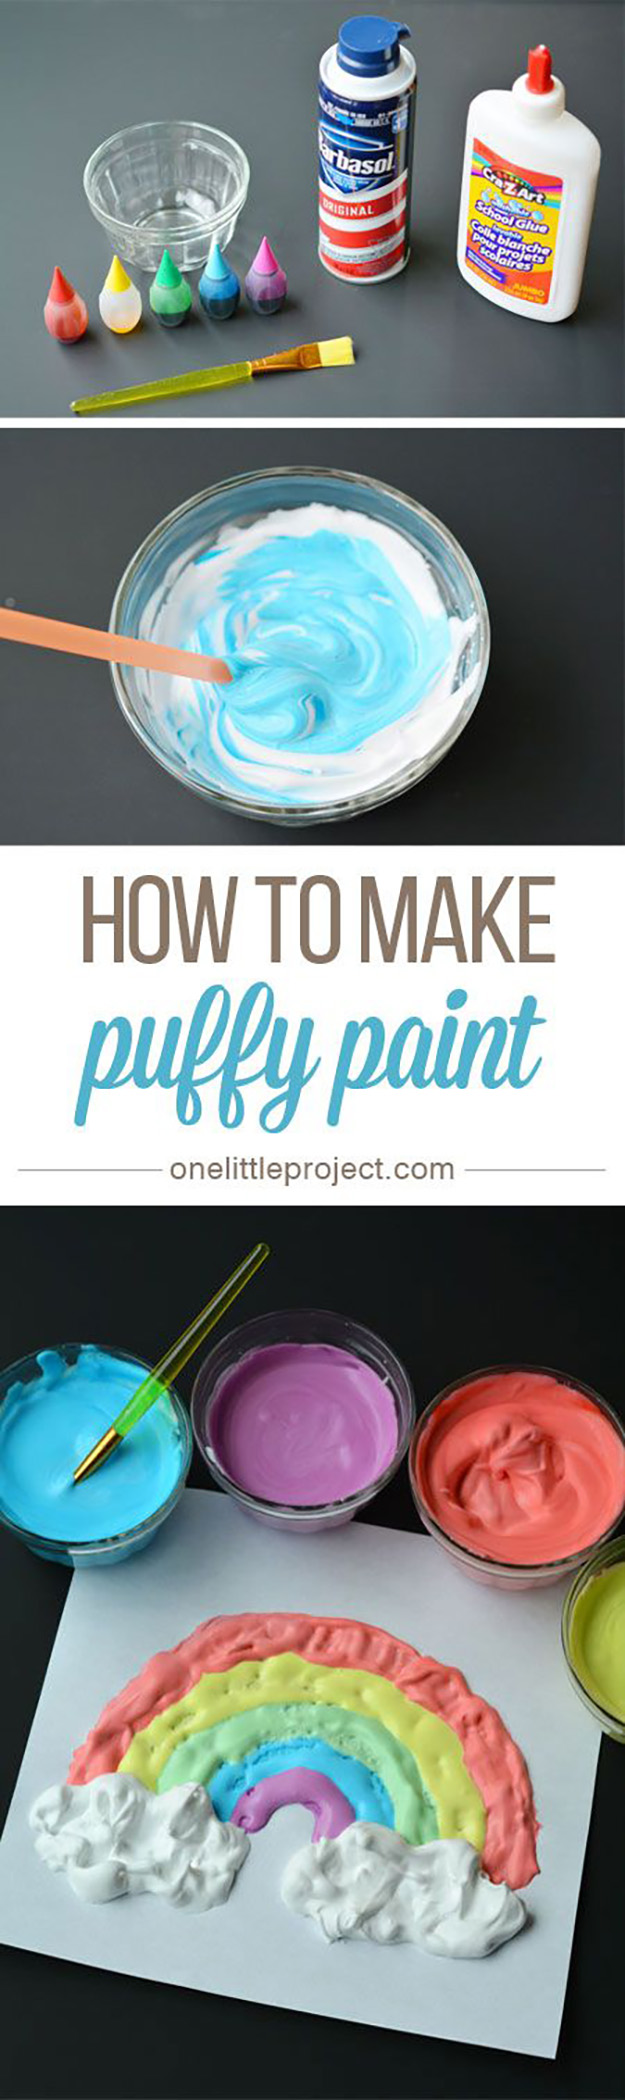 Marvelous Diy Kids Craft Ideas Part - 8: Simple Crafts For Kids To Make | DIY Puffy Paint Tutorial | Easy DIY Craft  Ideas